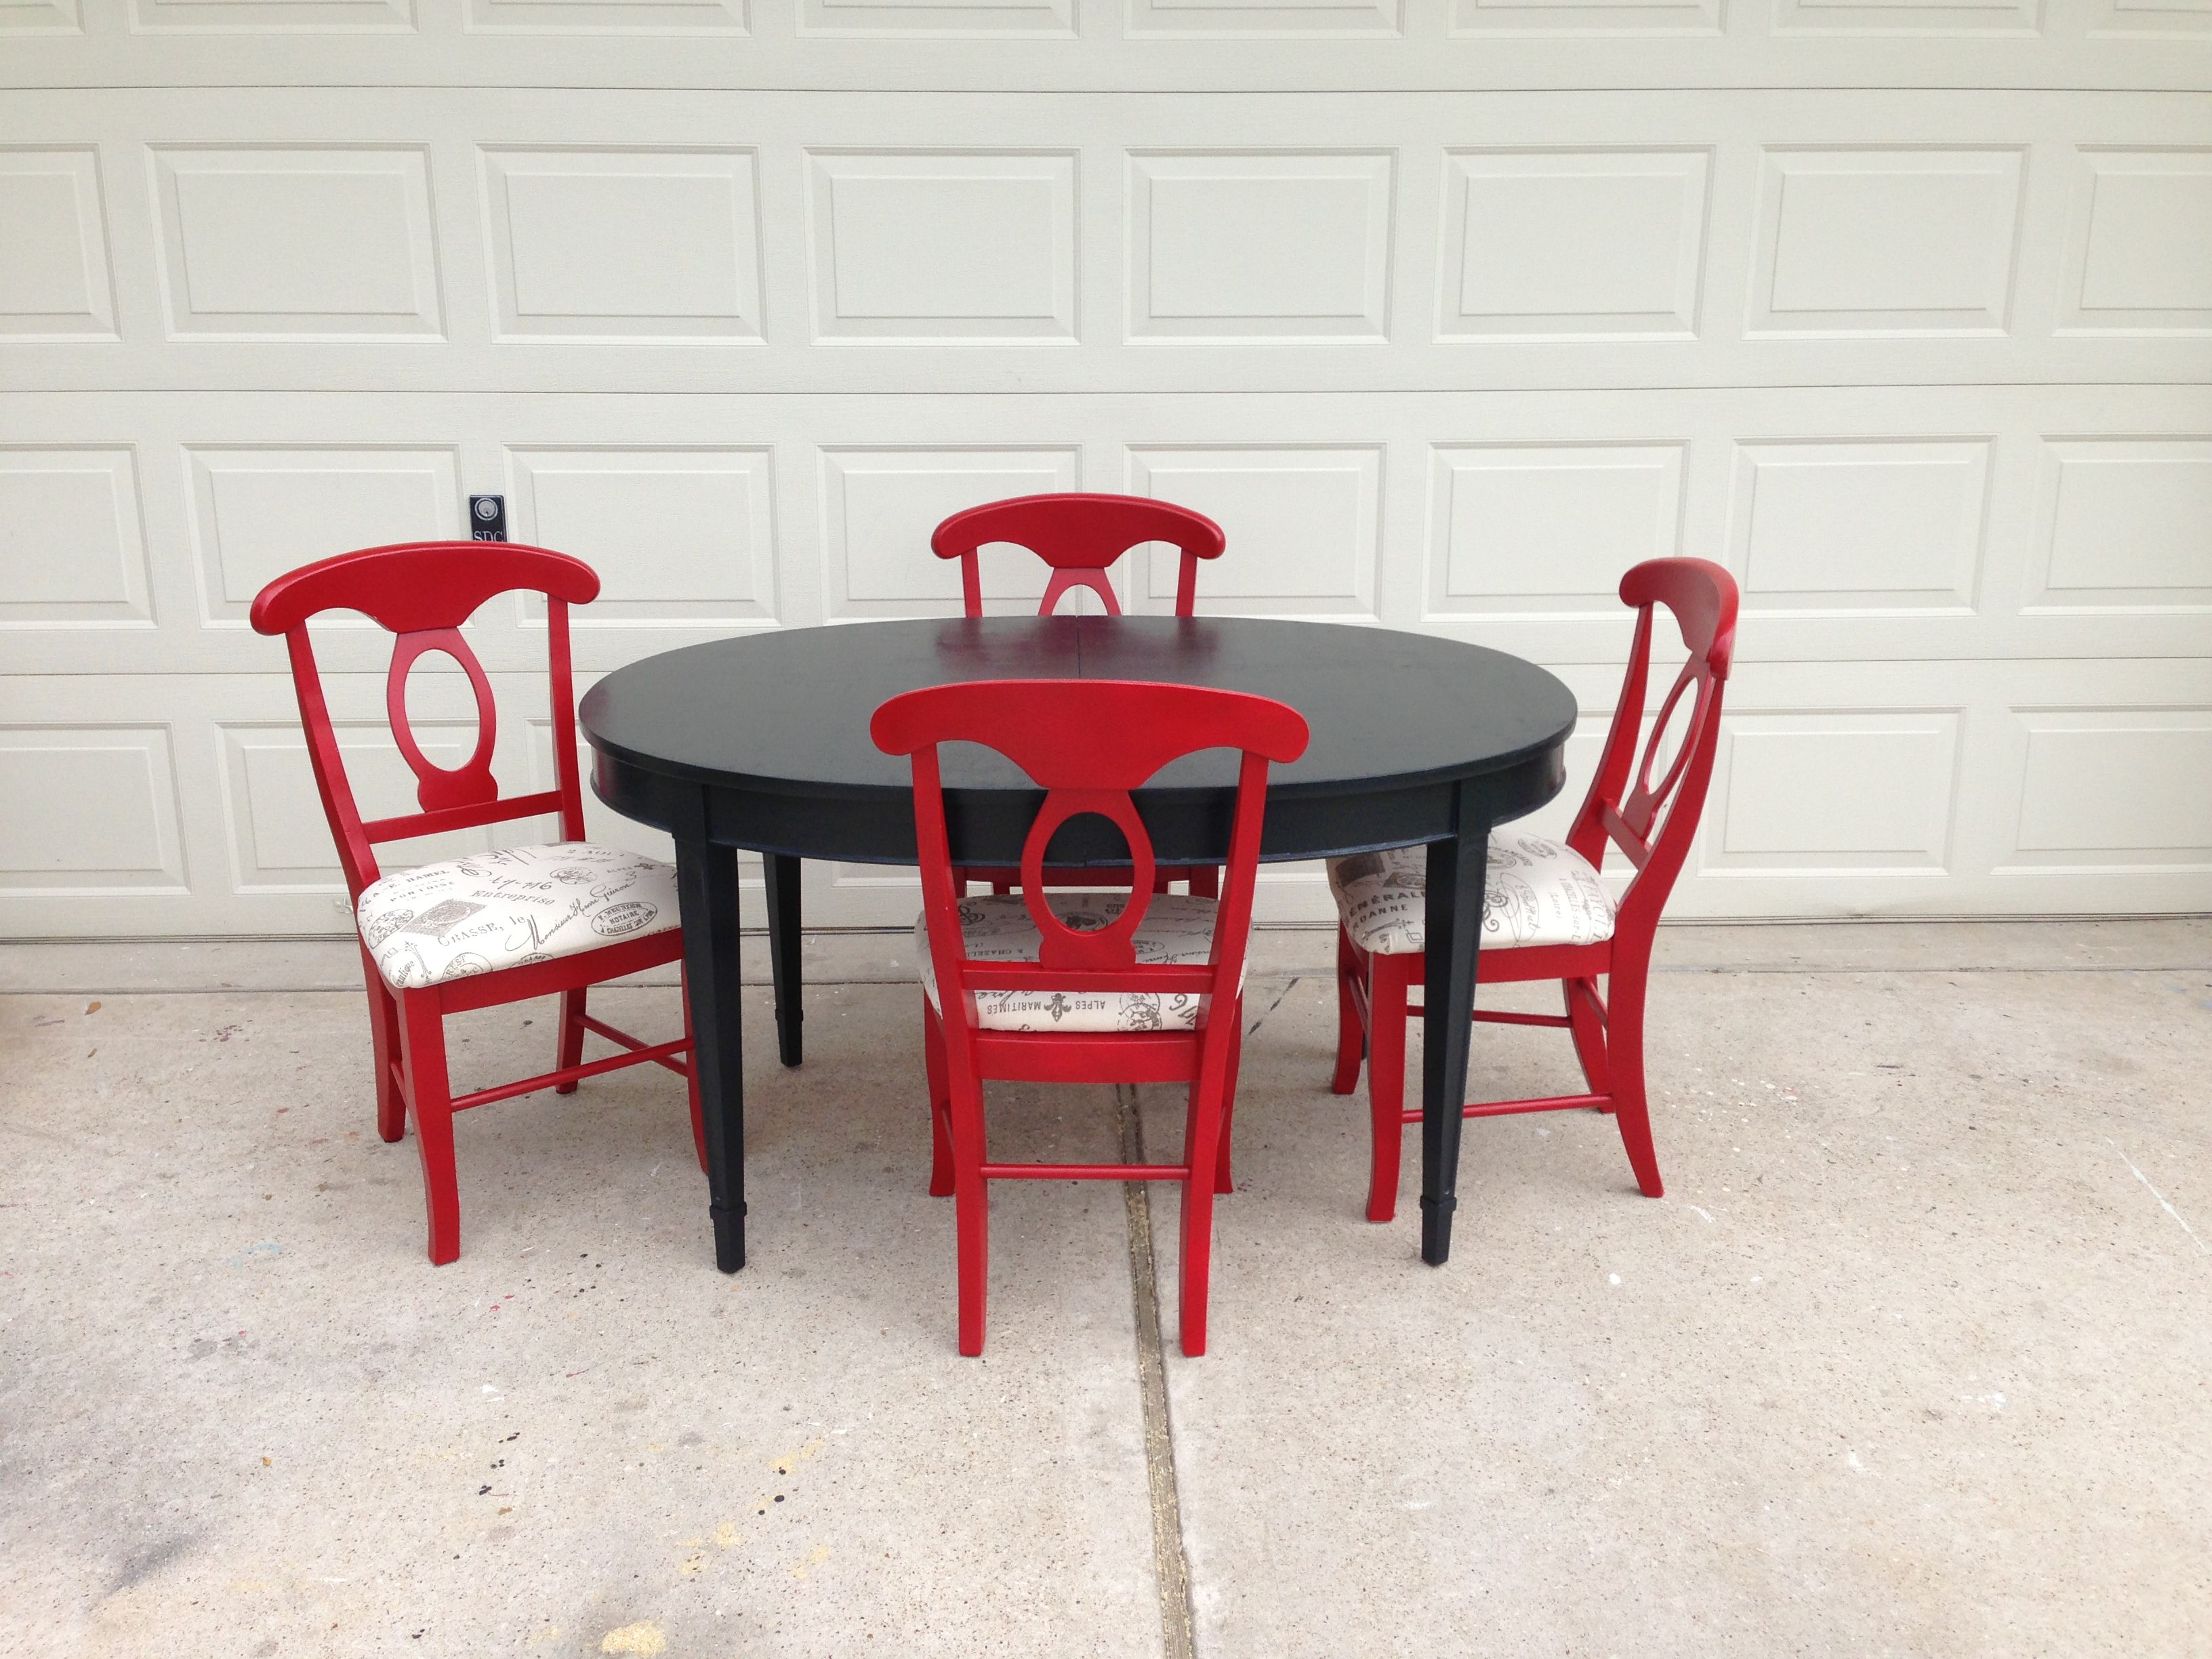 Red And Black Breakfast Table Chairs Kitchen Decor Dining Room Small